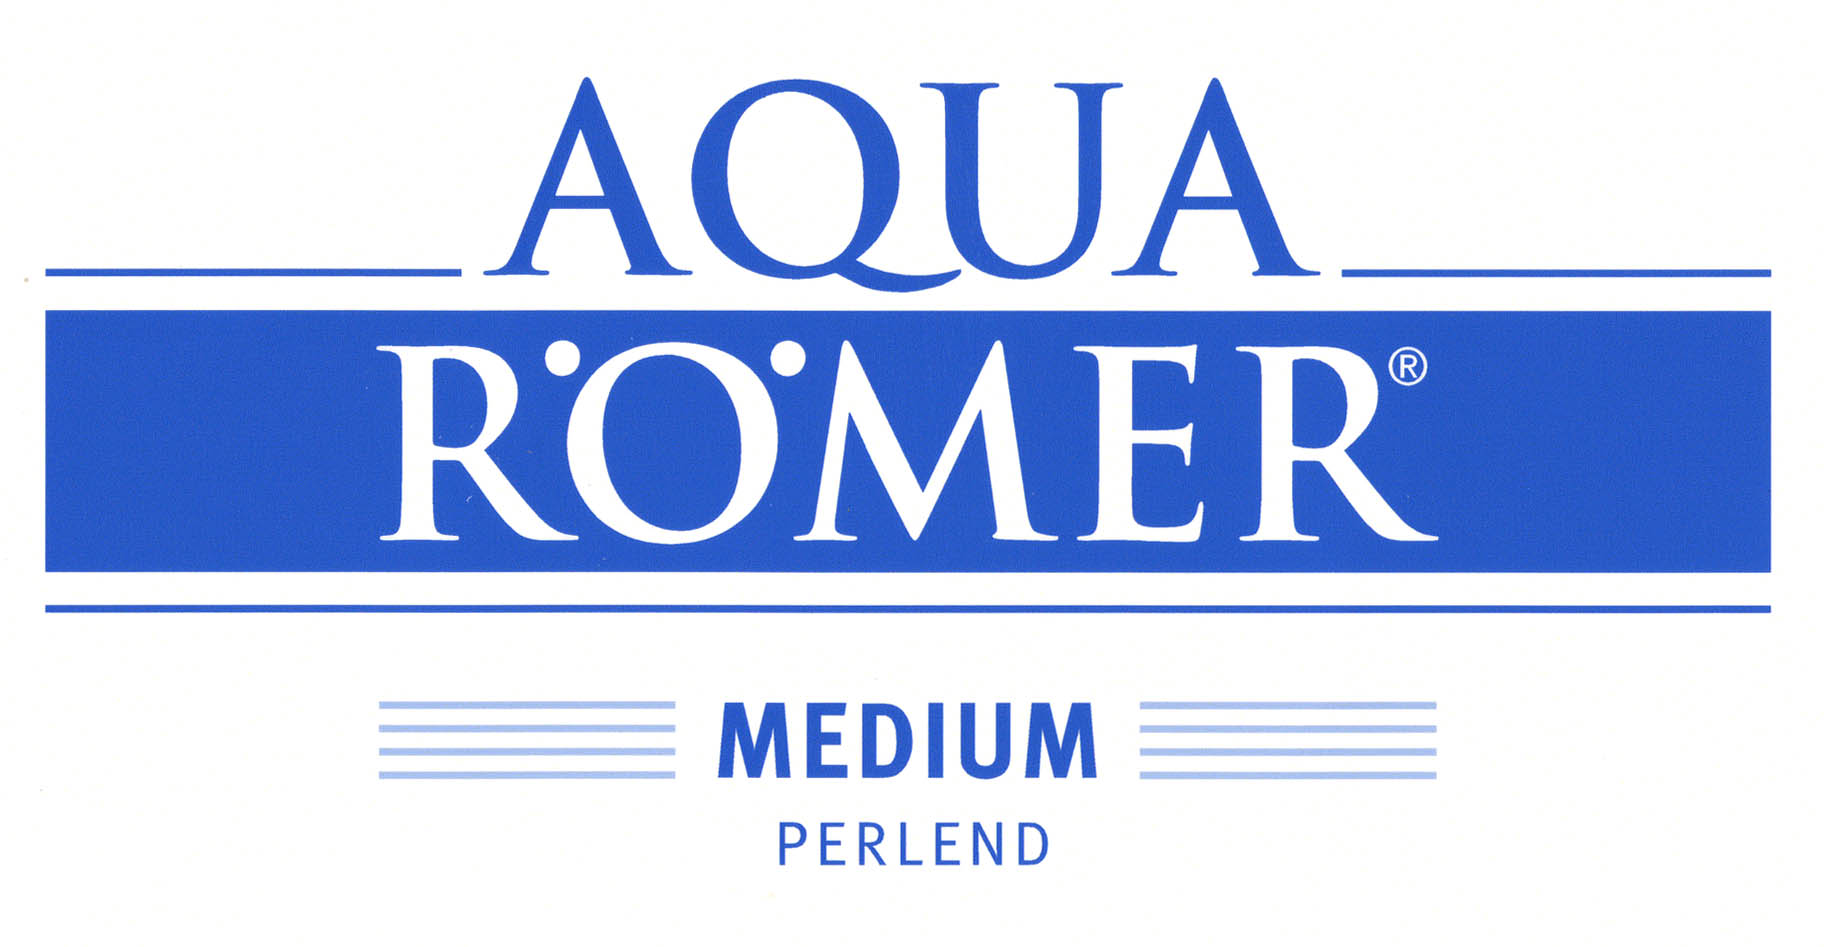 AQUA RÖMER MEDIUM PERLEND